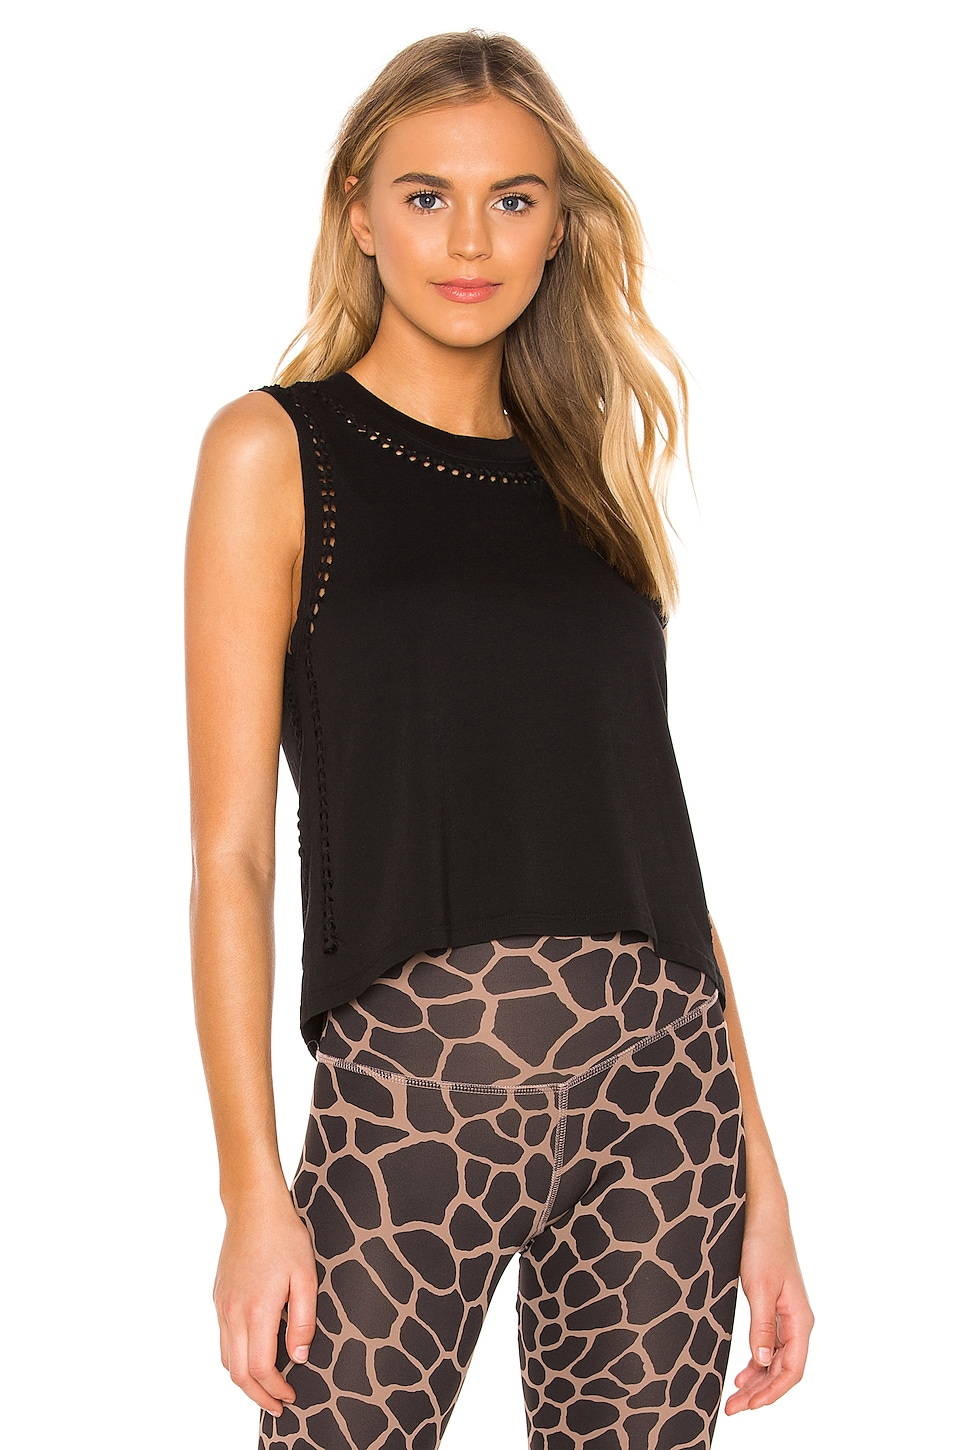 Track & Bliss The Knot Tank in Black